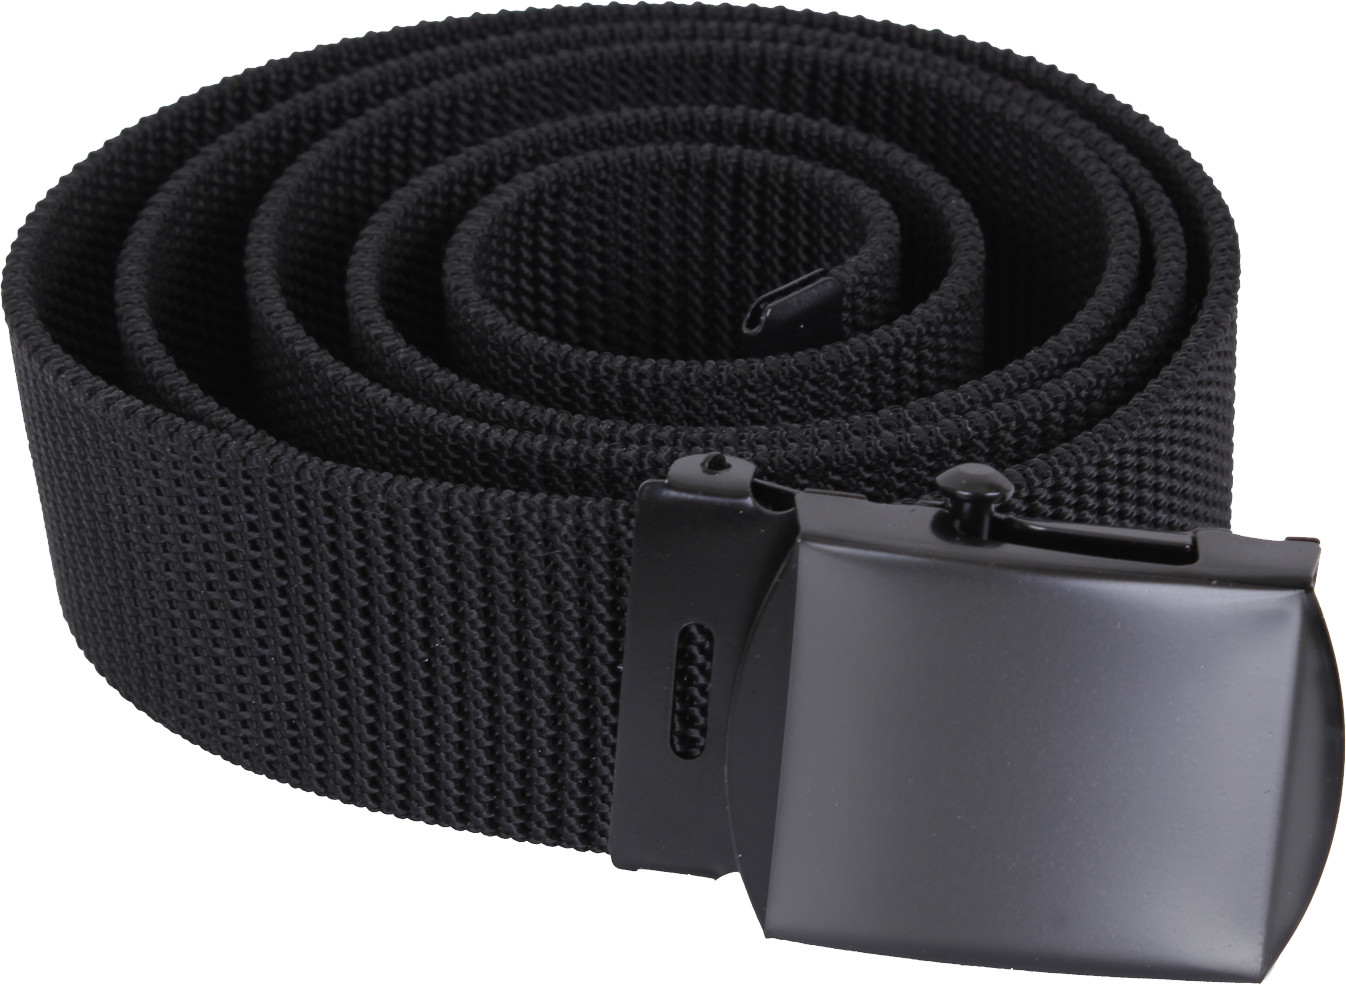 Black Nylon Web Belt with Black Buckle 8fbc9100446